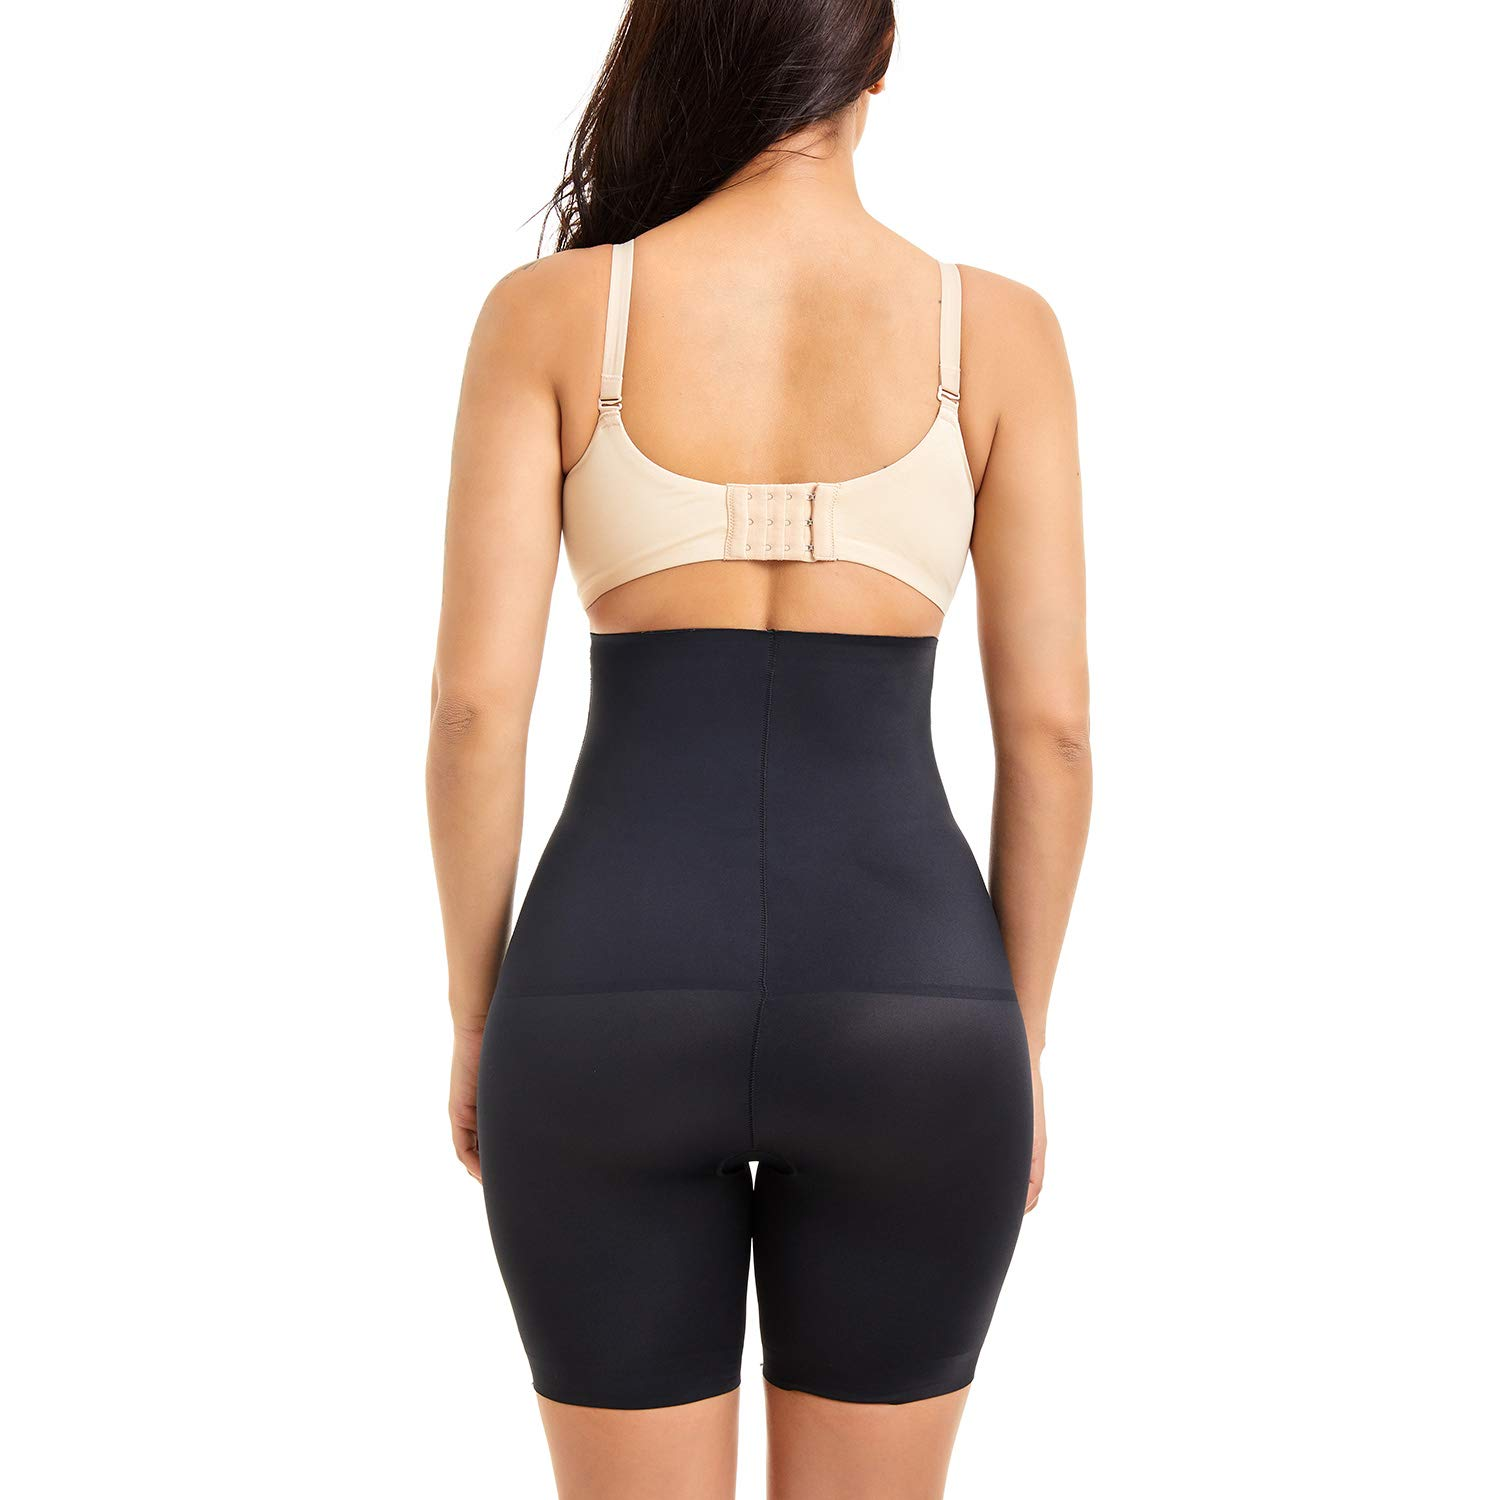 COHTB Womens Shapewear Hi-Waist Brief Firm Tummy Control Body Shaper Shorts Thigh Slimmer